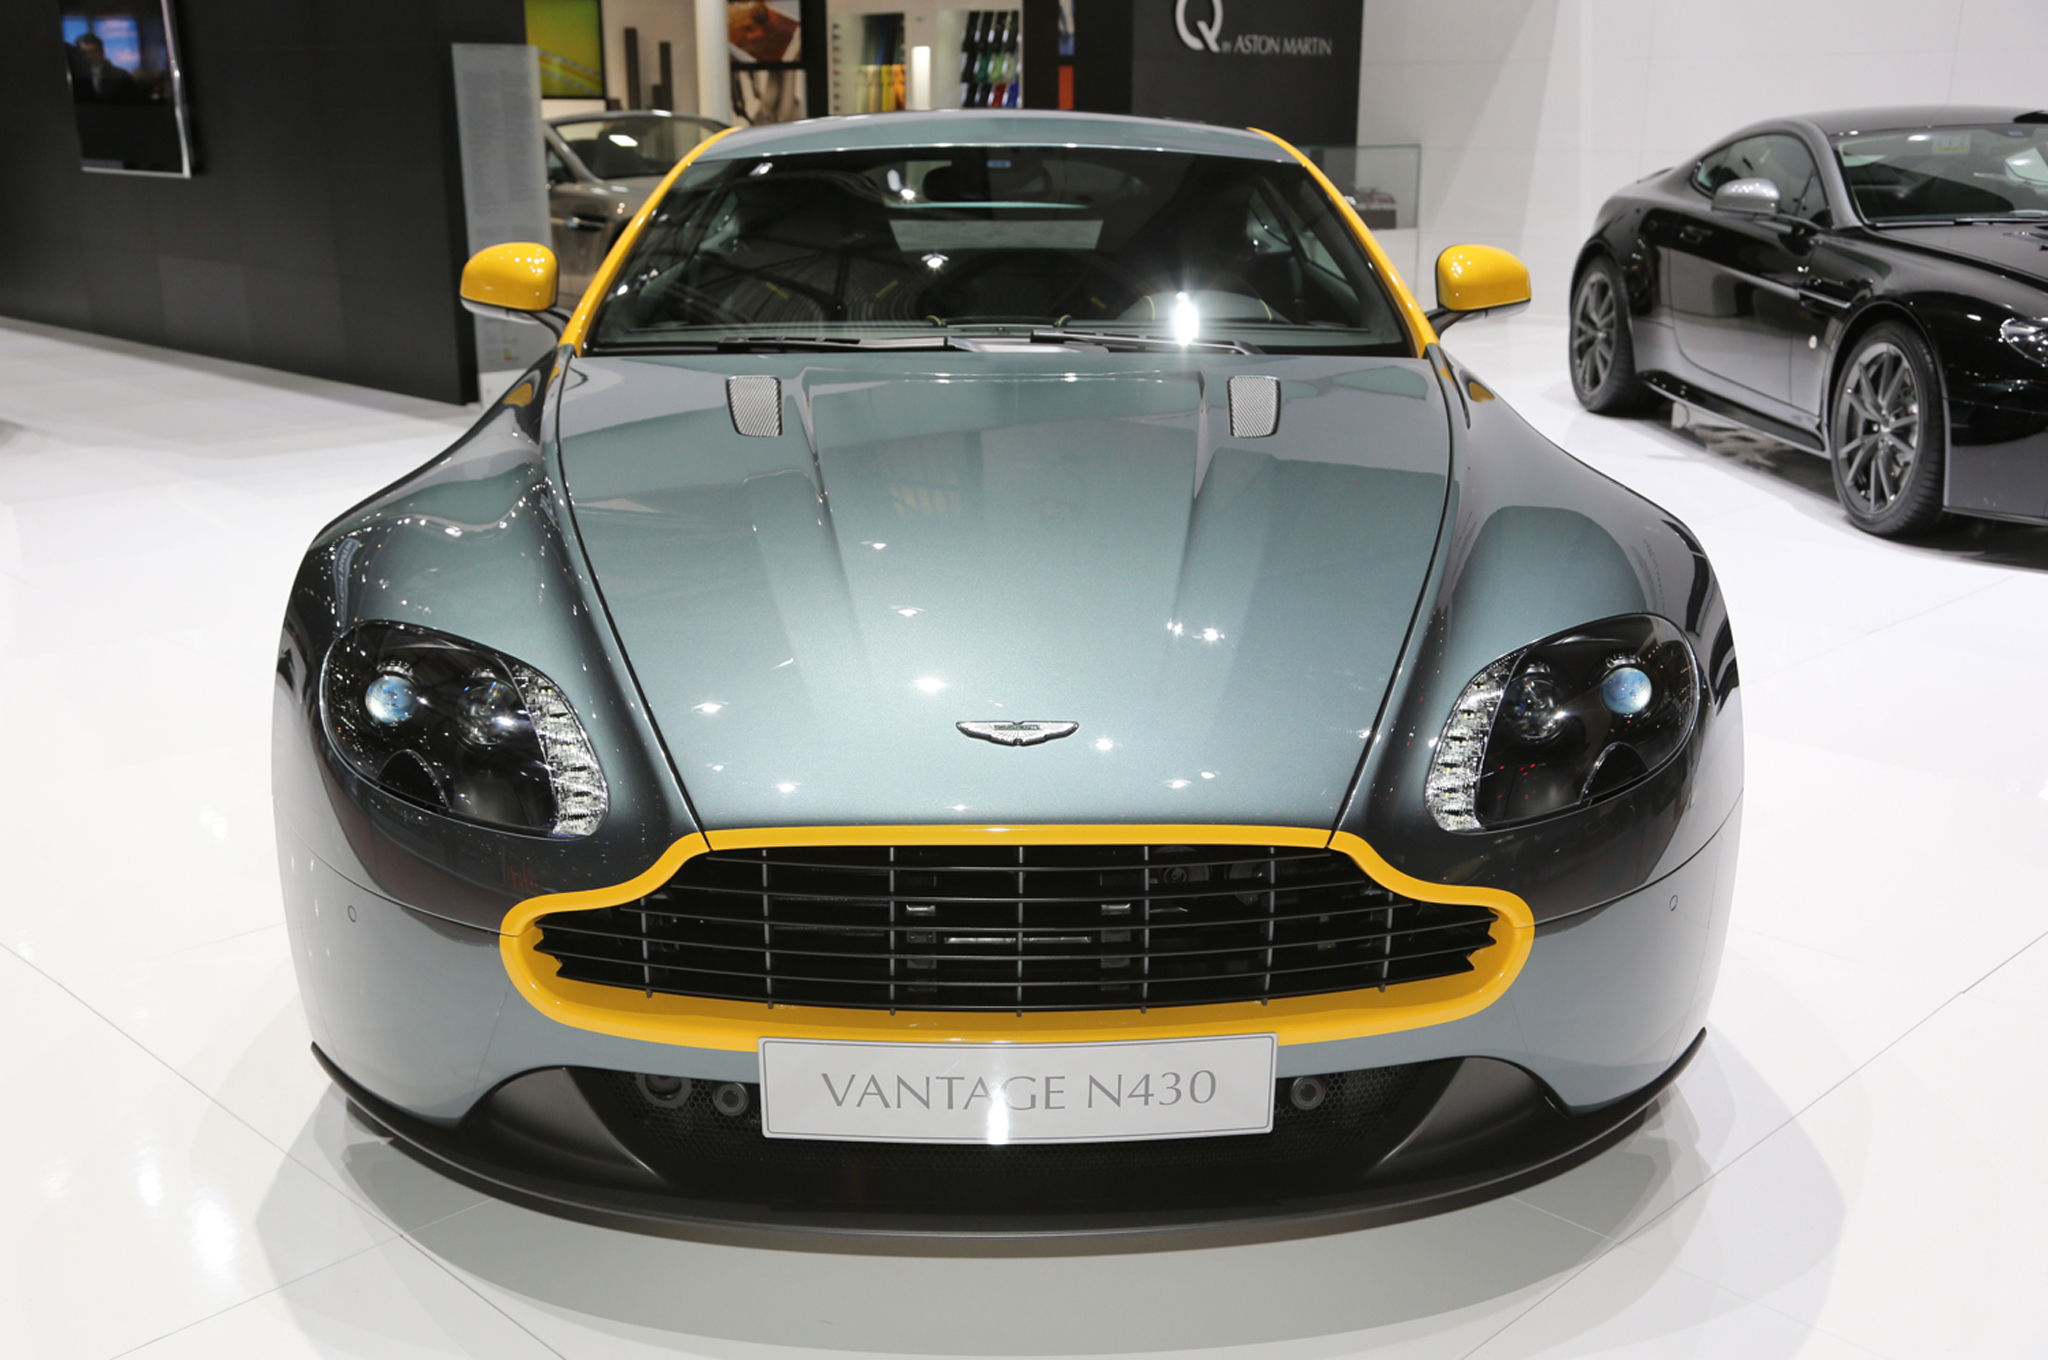 2015 Aston Martin V8 Vantage Gt Front Design (View 5 of 7)